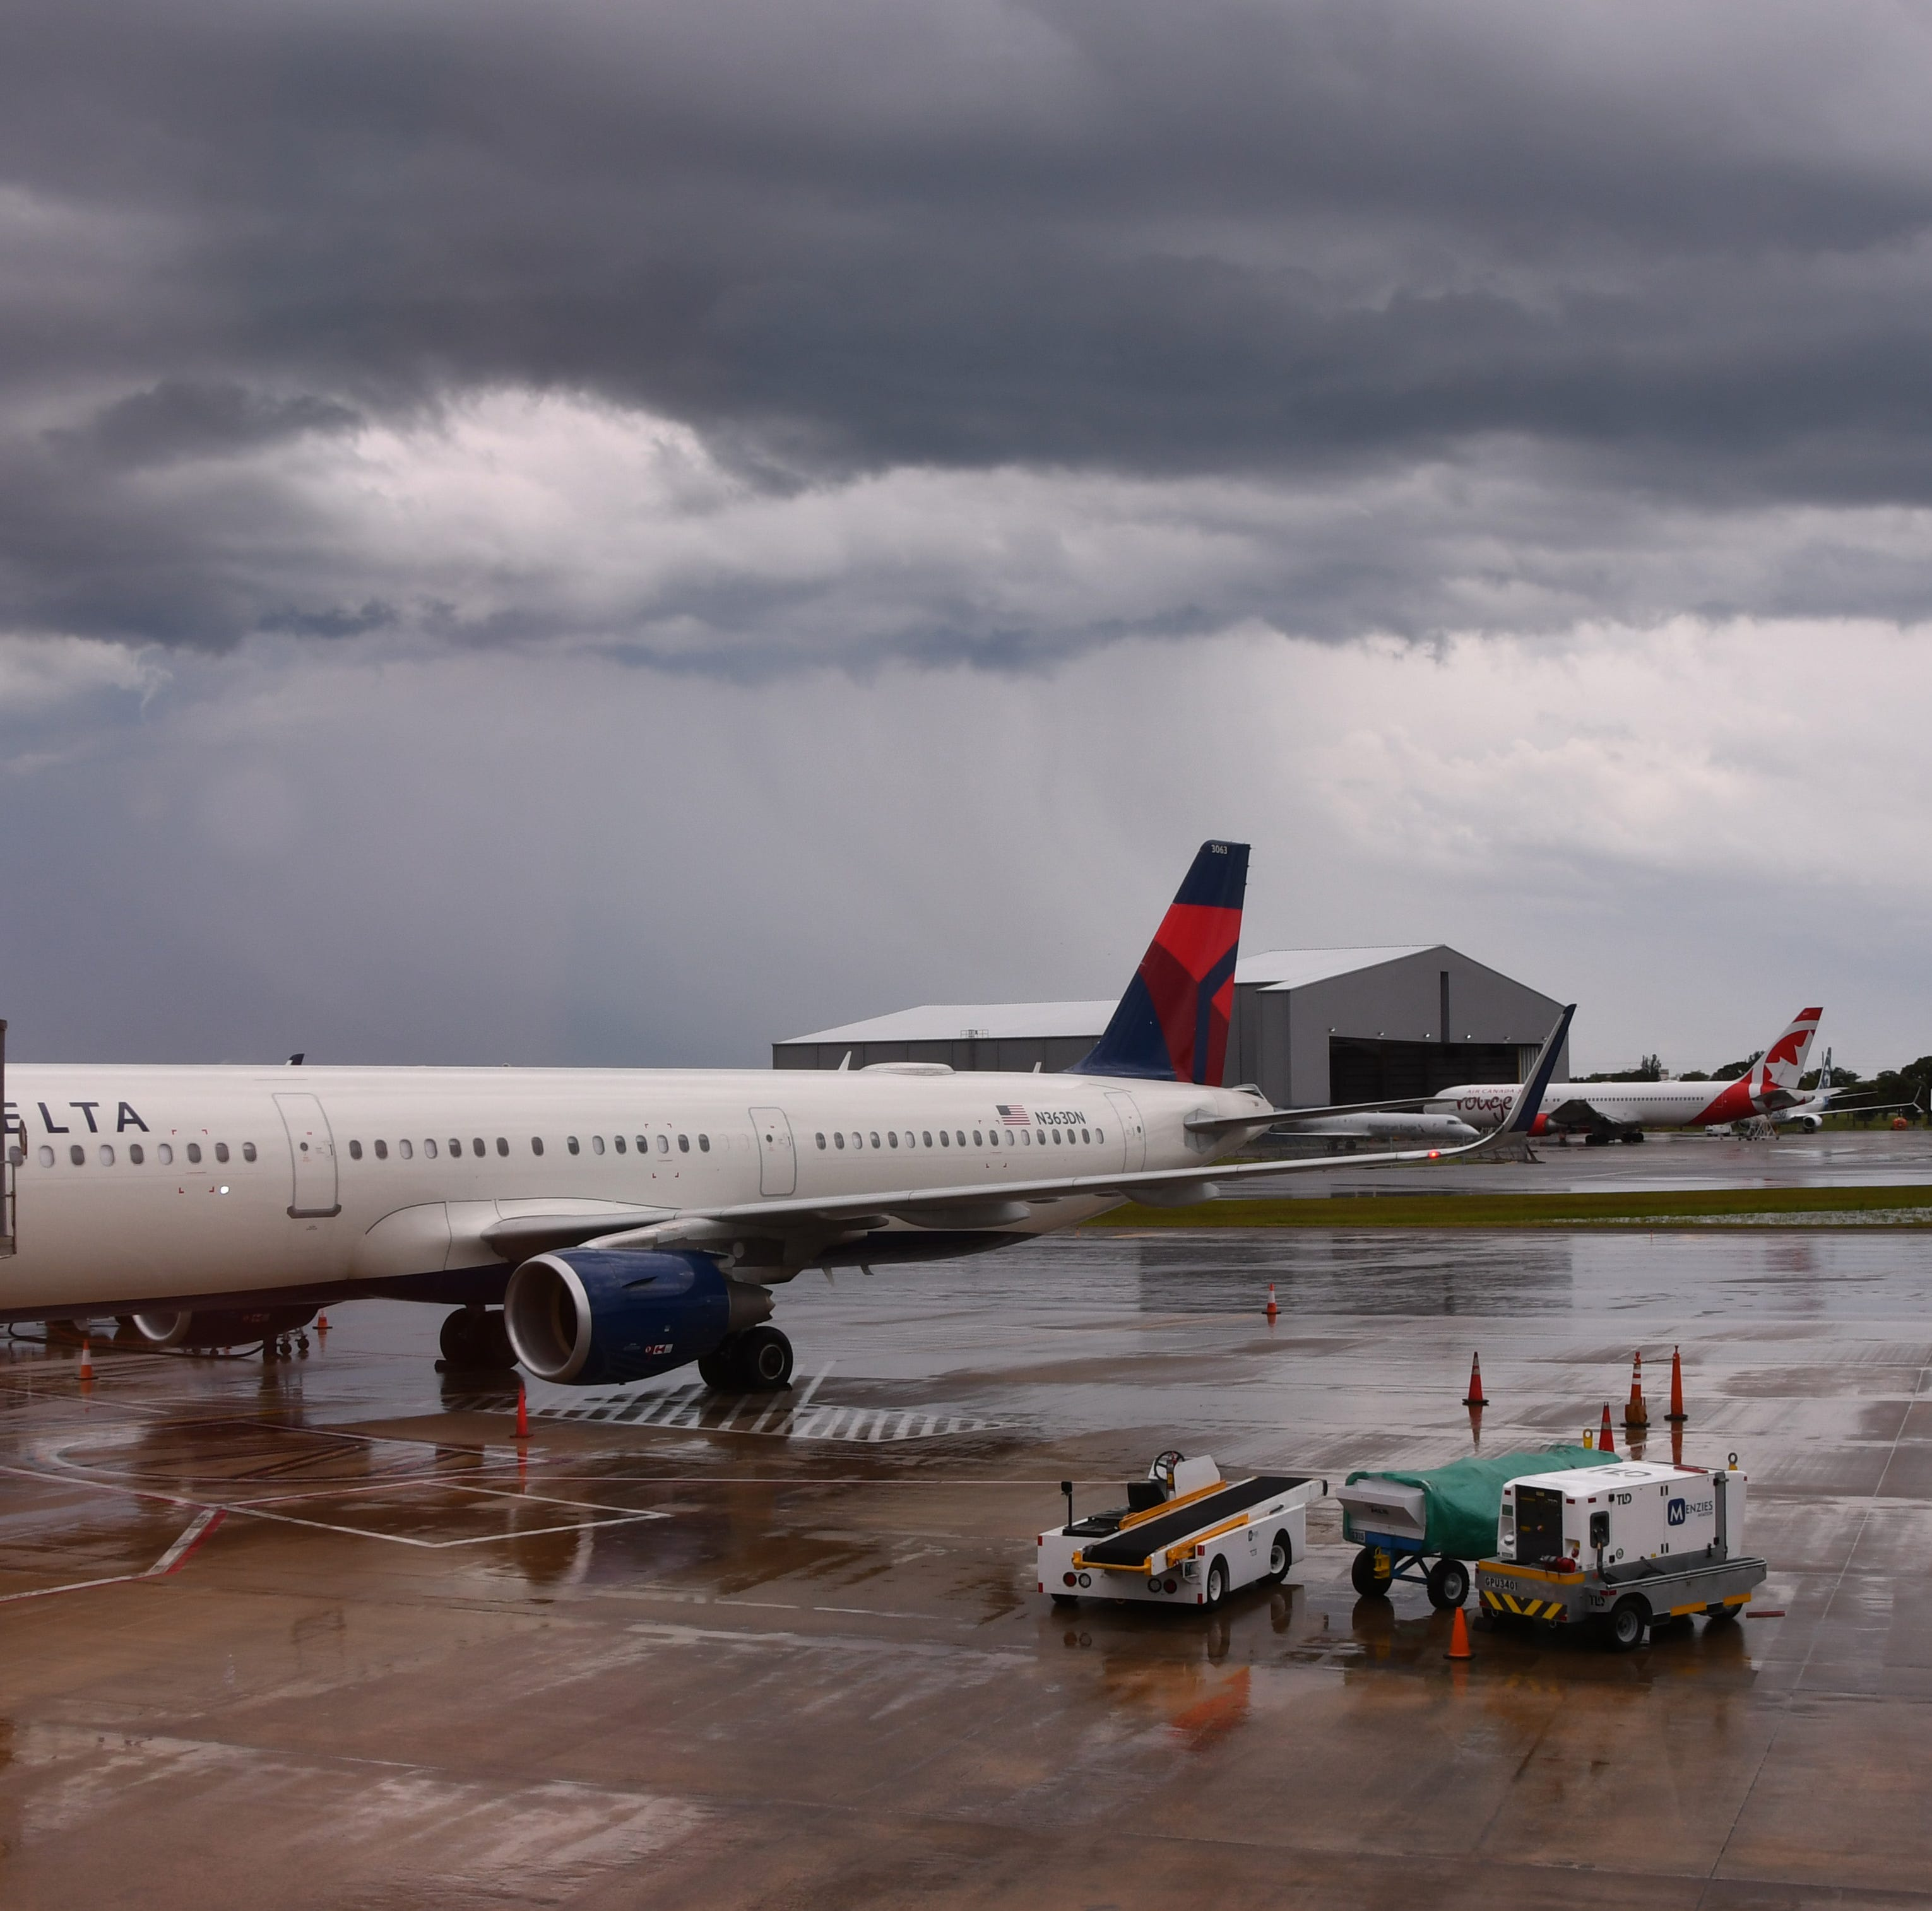 Rough weather forces domestic Airbus flight from New York to divert to Orlando Melbourne International Airport; Over 60 delays reported